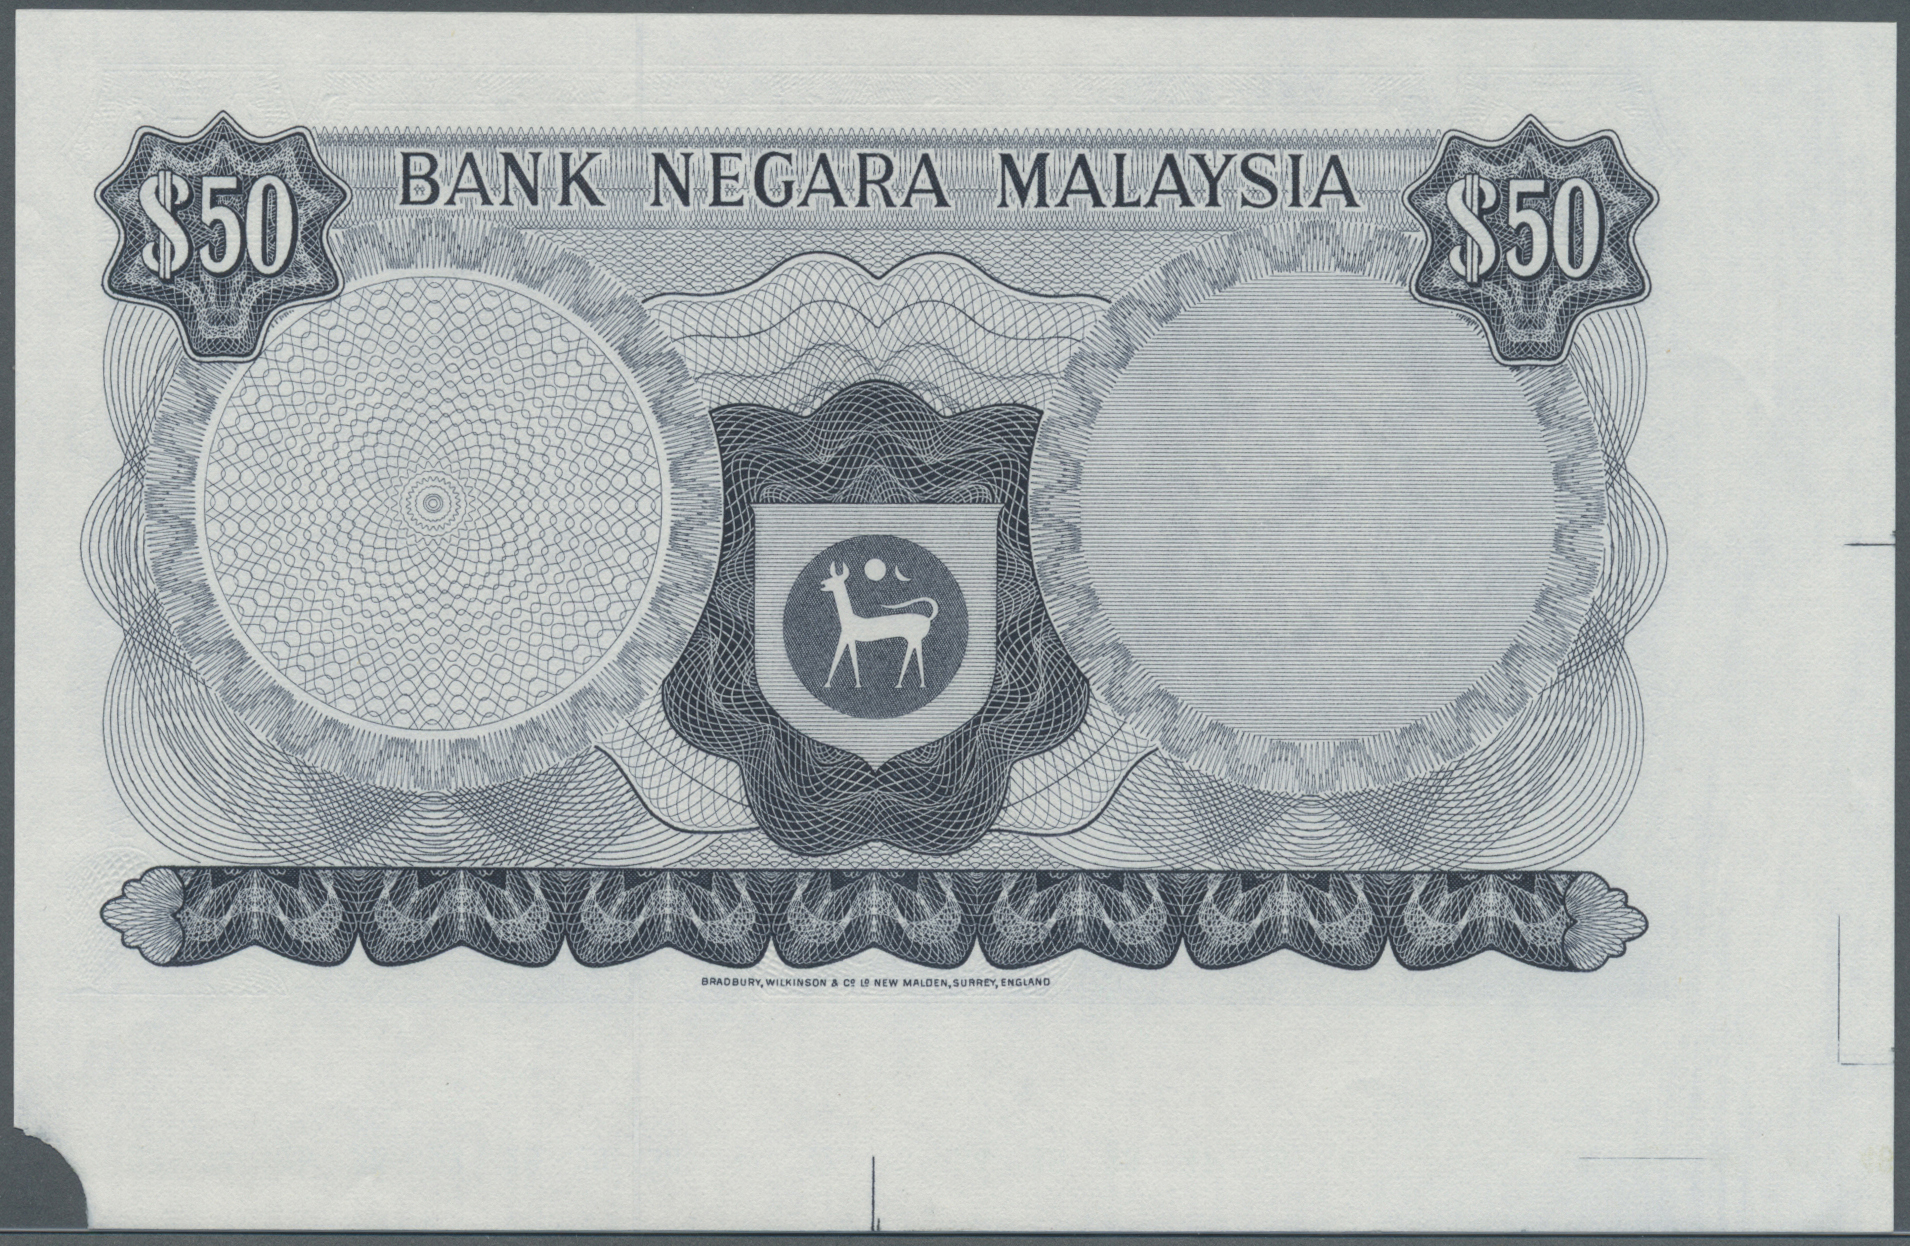 Lot 2335 - Malaysia | Banknoten  -  Auktionshaus Christoph Gärtner GmbH & Co. KG Banknotes & Coins Auction #39 Day 2